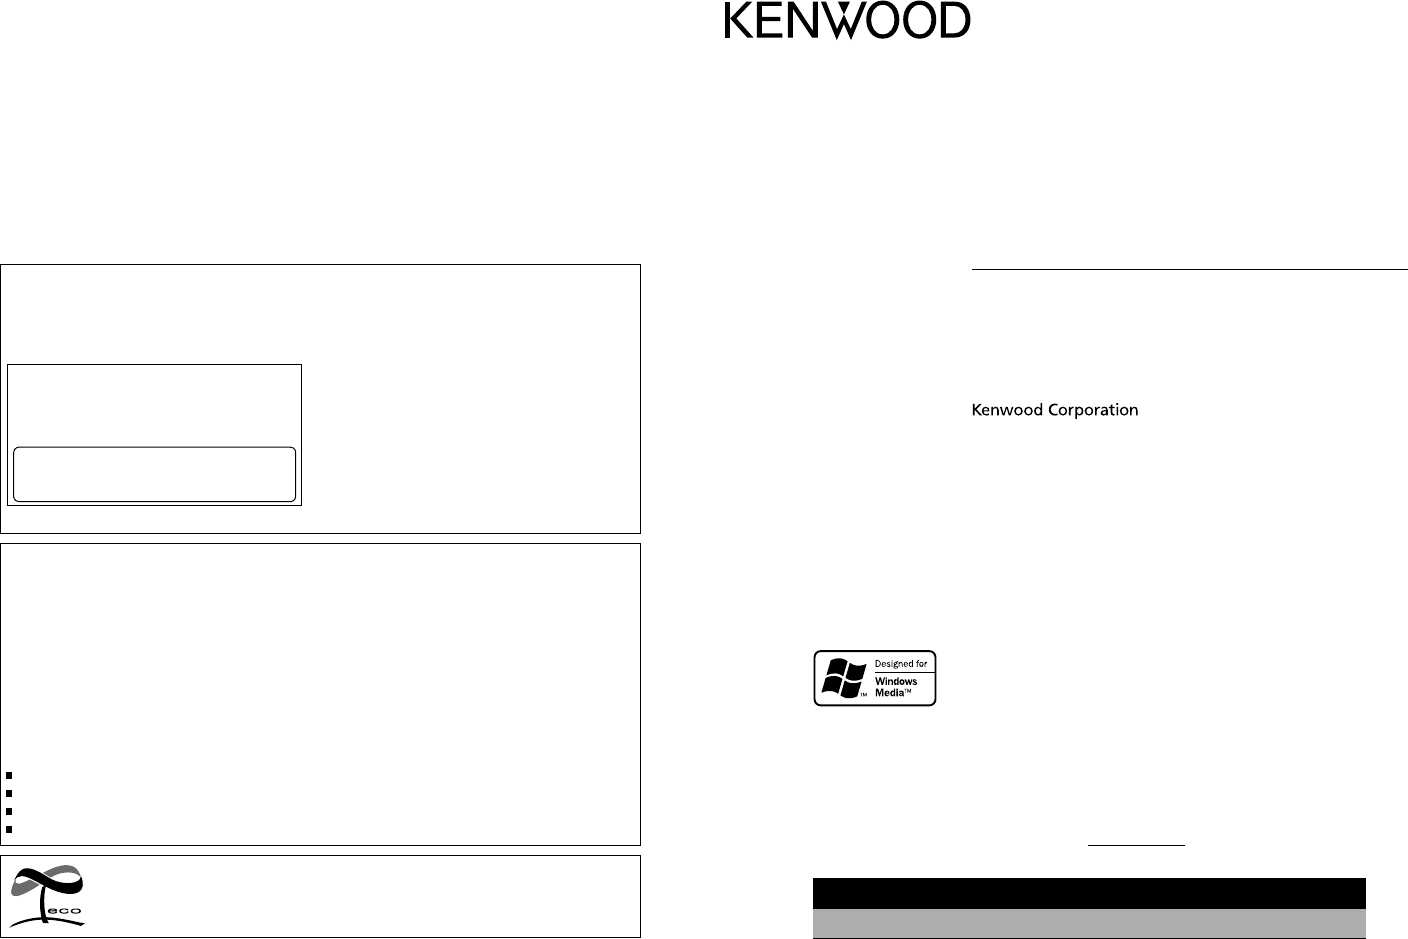 kenwood car stereo system kdc 148 user guide manualsonline com rh manualsonline com Charger for Kenwood Car Stereo Kenwood Car CD Decks